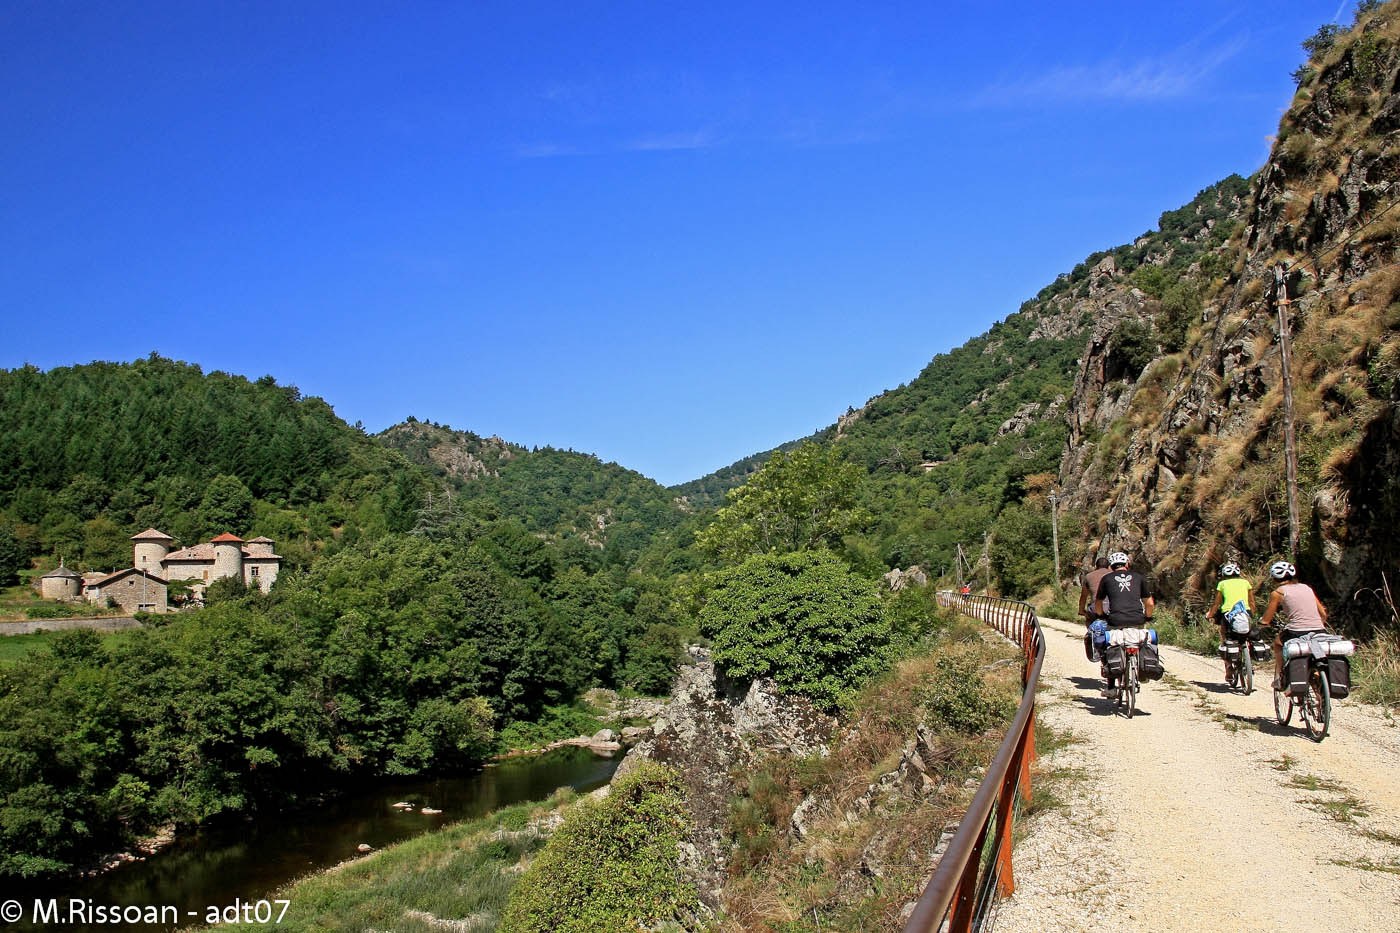 Foot and cycle paths : The Dolce Via from La Voulte sur Rhône to Lamastre